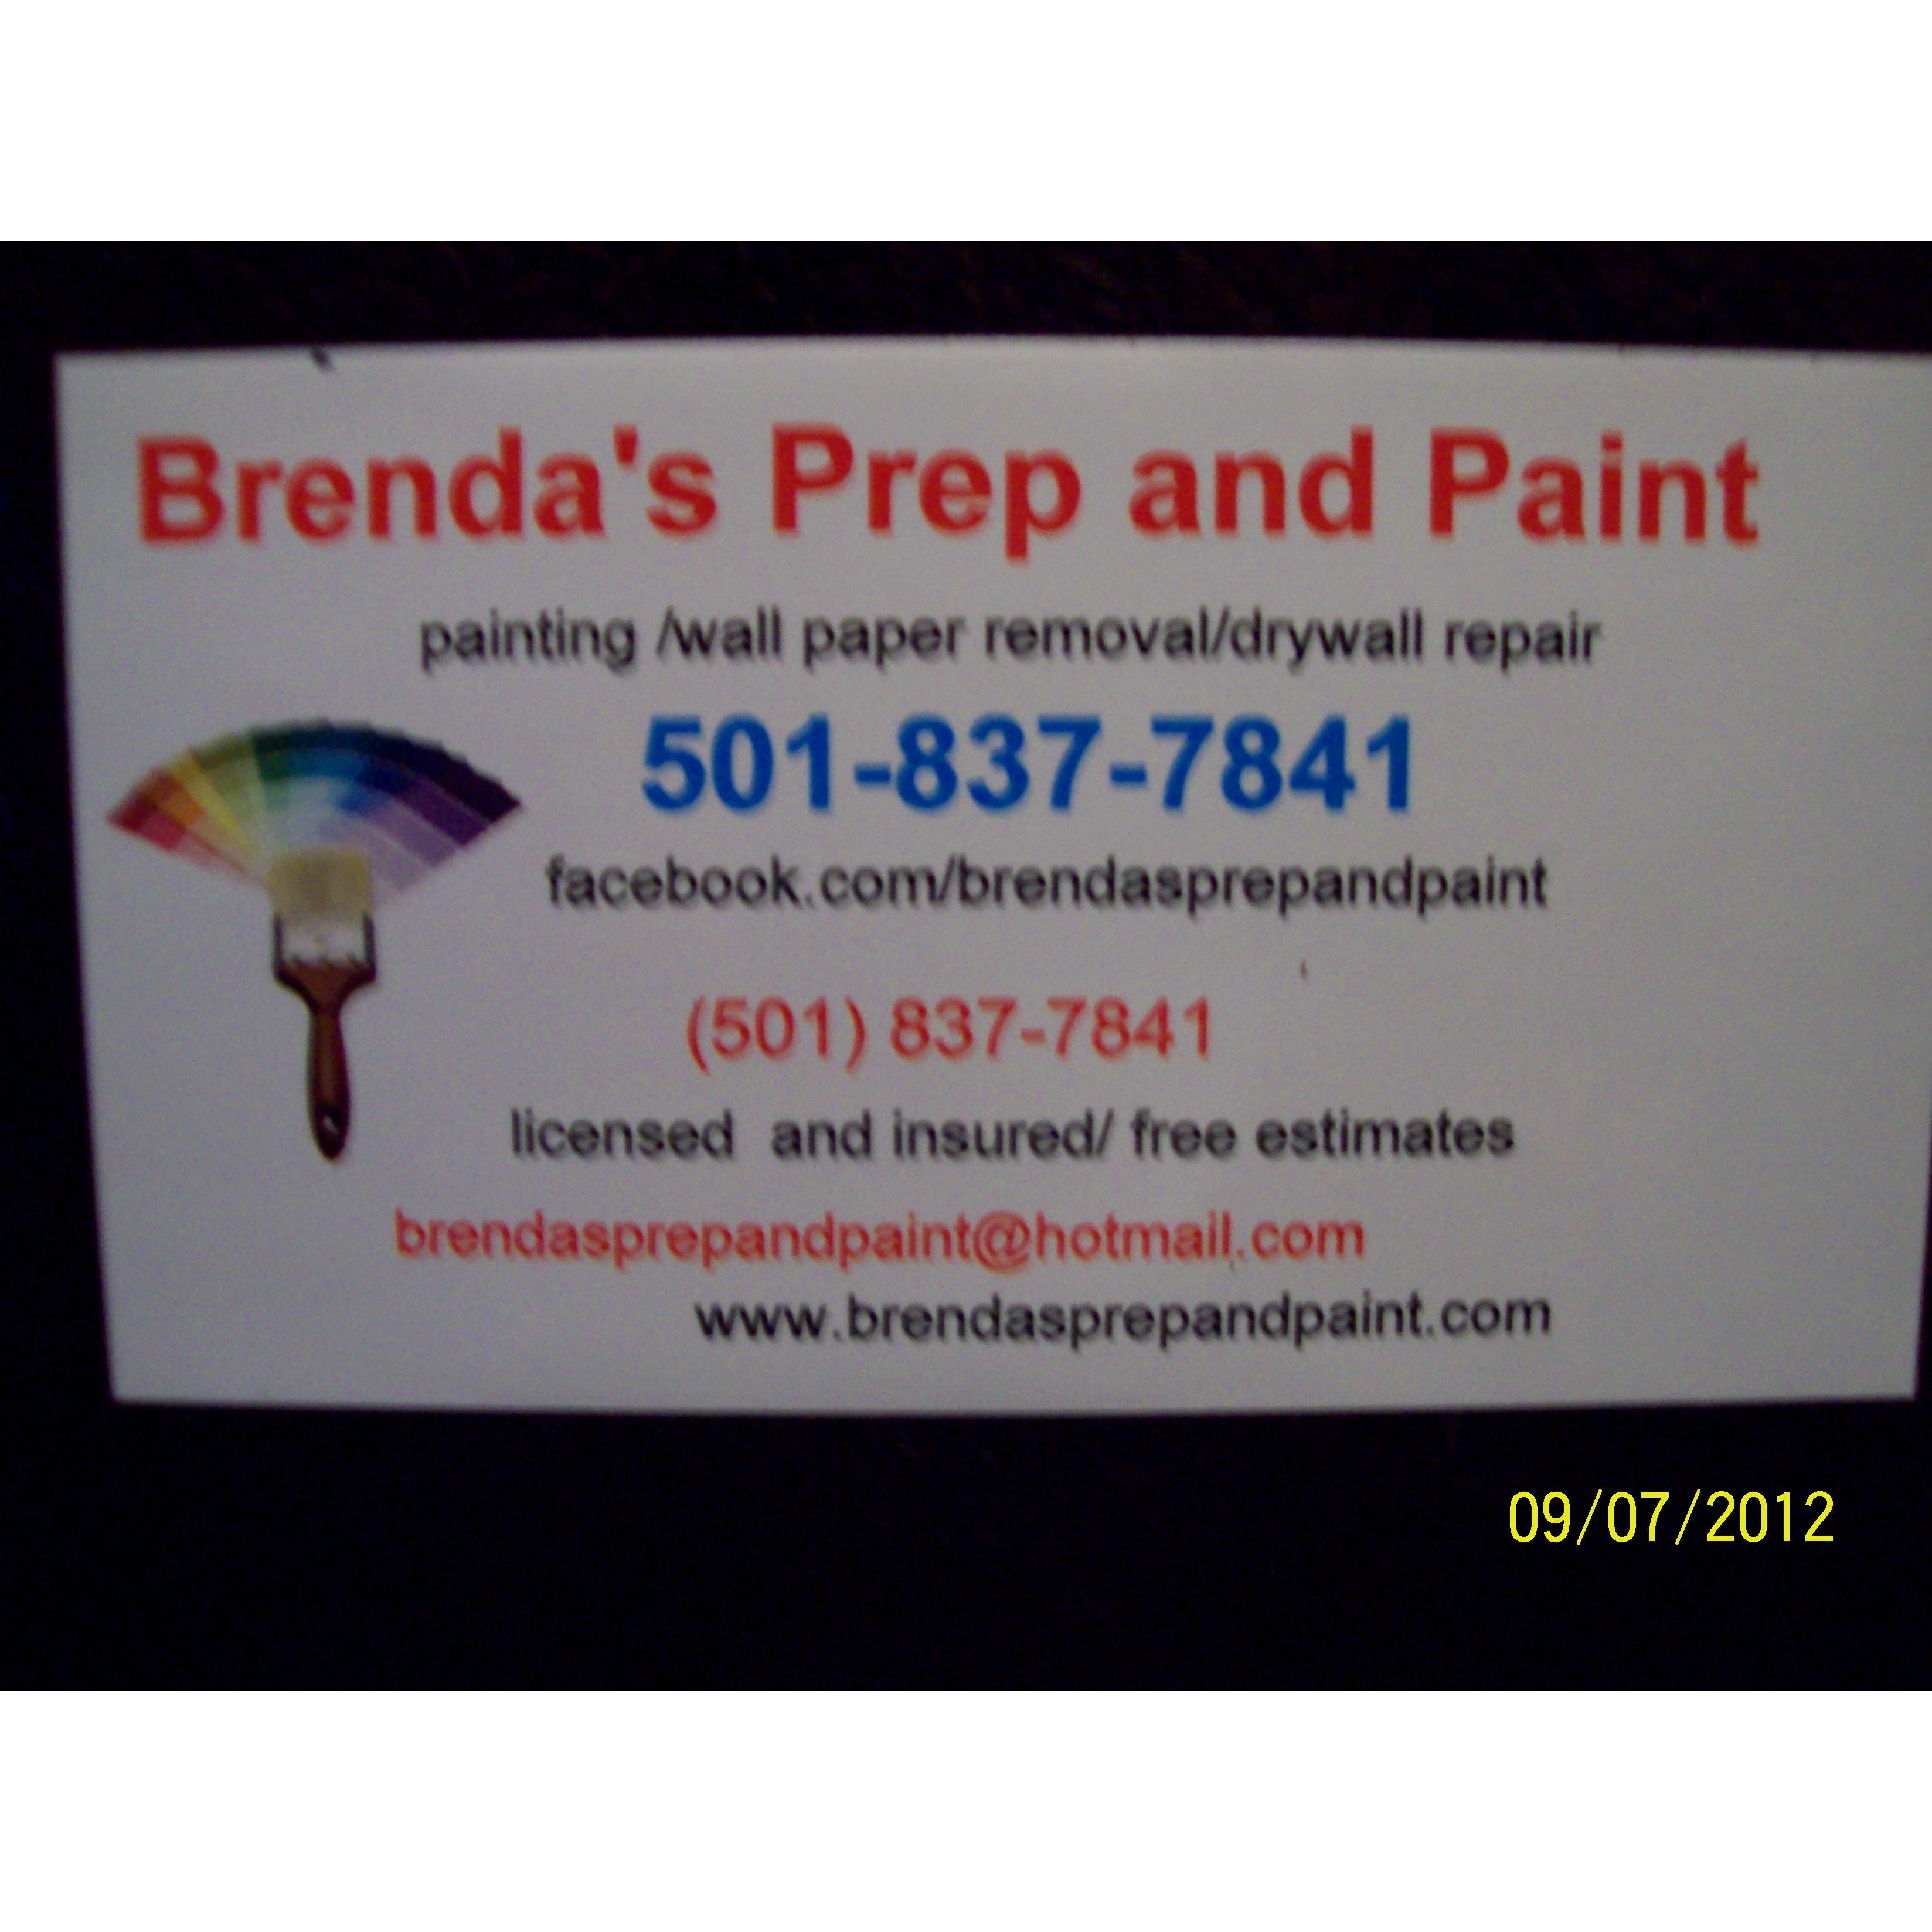 Brenda's Prep and Paint